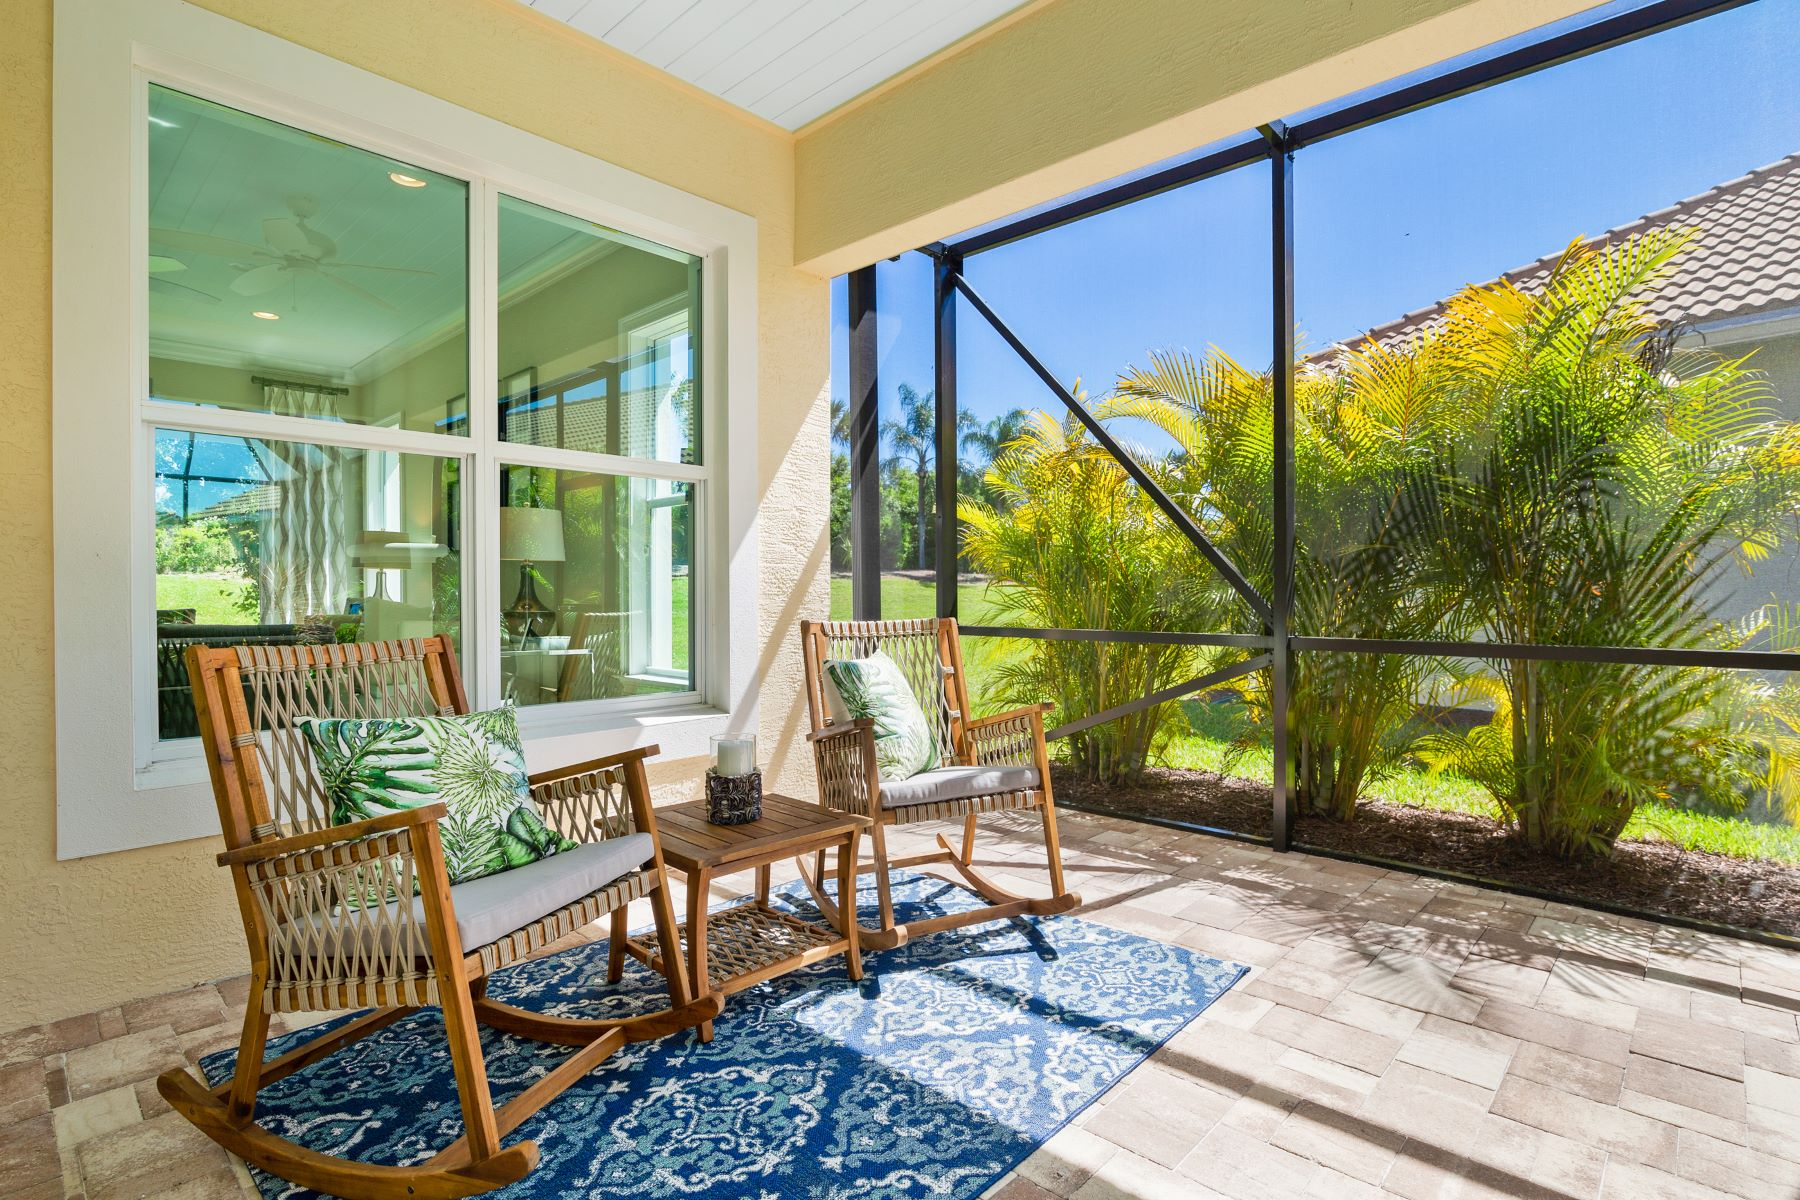 Additional photo for property listing at Courtyard Pool Home 2133 Falls Circle Vero Beach, Florida 32967 United States